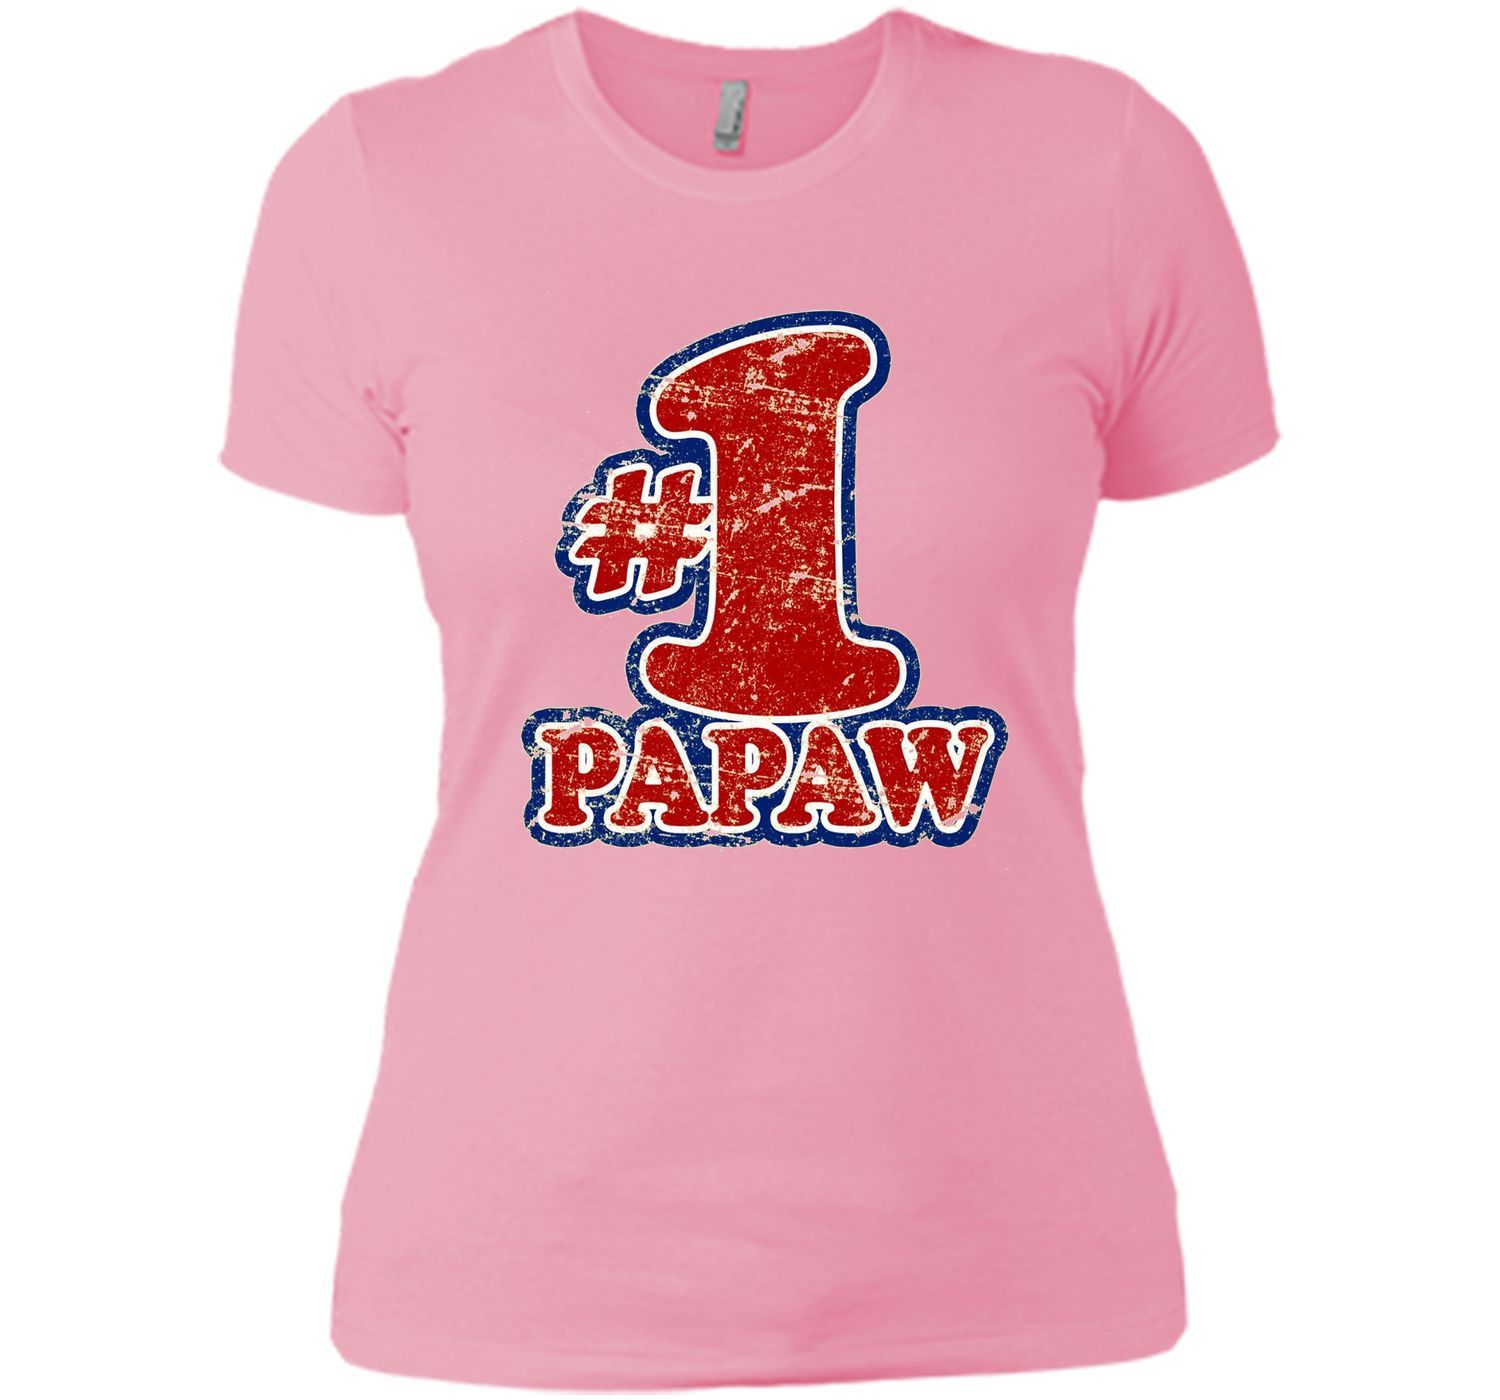 Men's #1 PaPaw T Shirt - Number One Father's Day Gift Tee